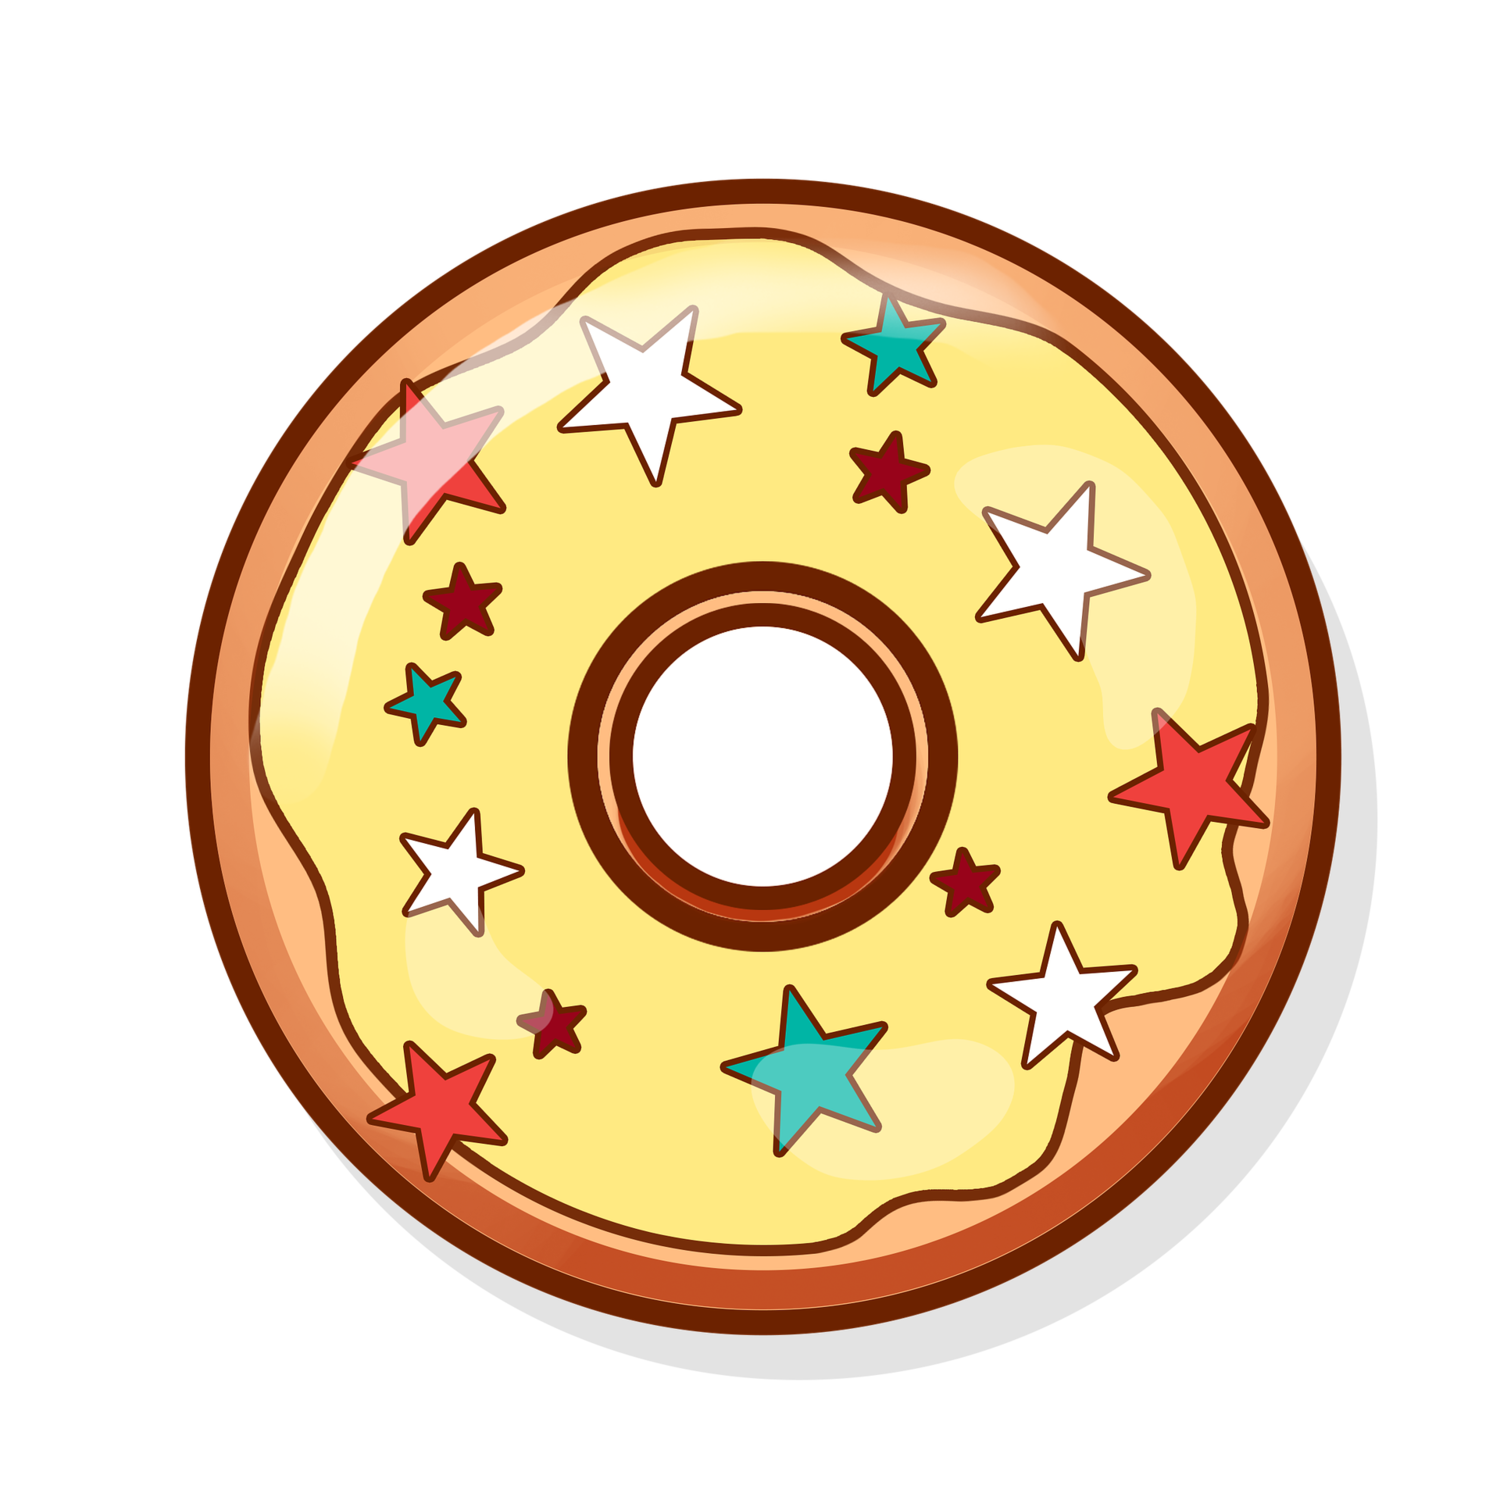 Donut clipart yellow. Sugarboy donuts donutpng